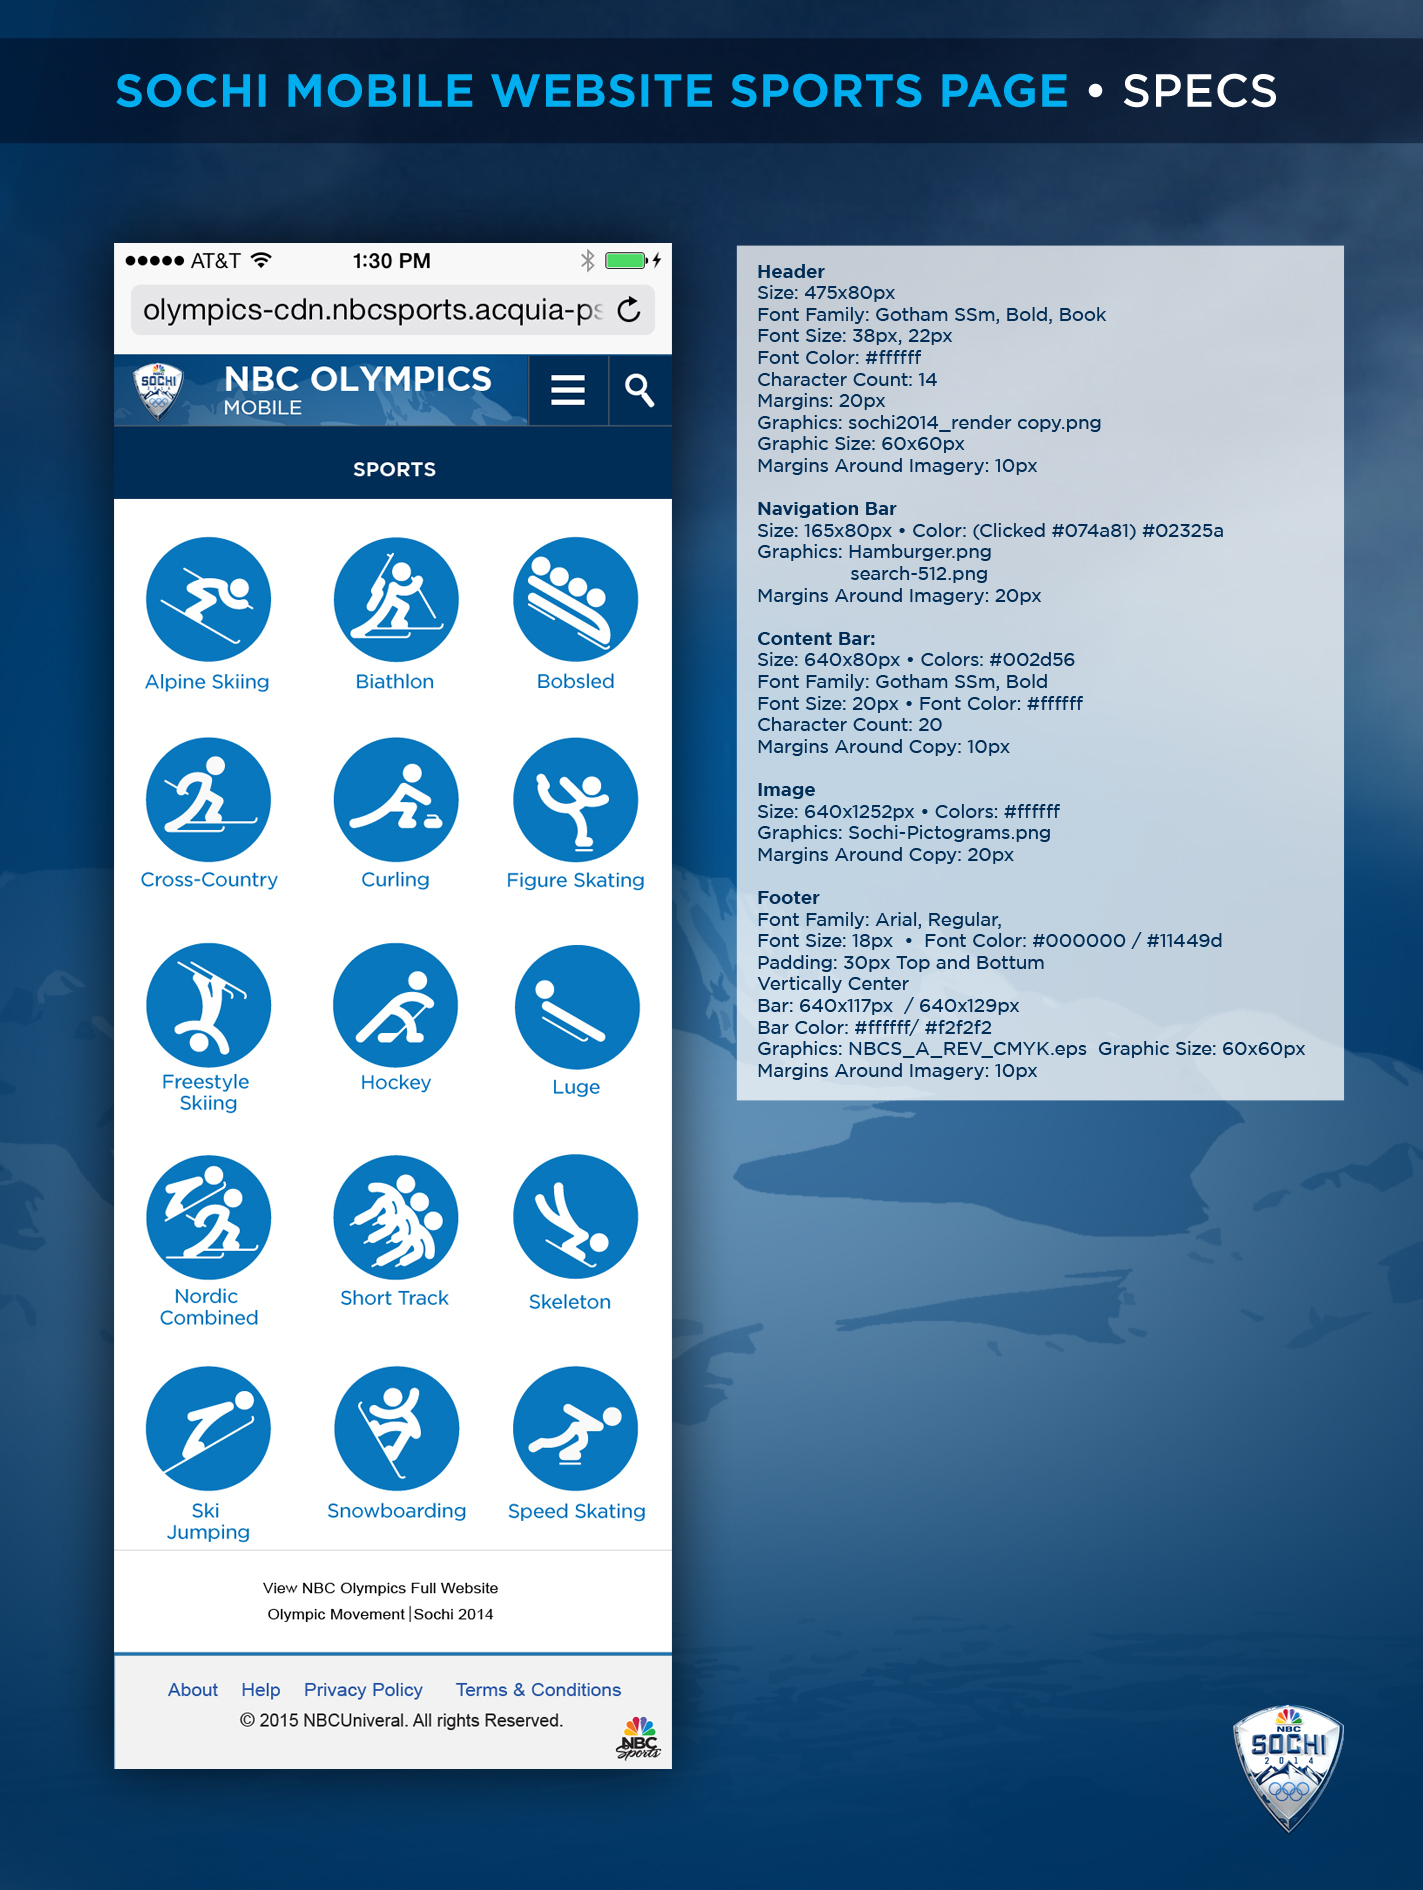 Sochi-Mobile-Website-Style-Guide-Sports-Page.jpg